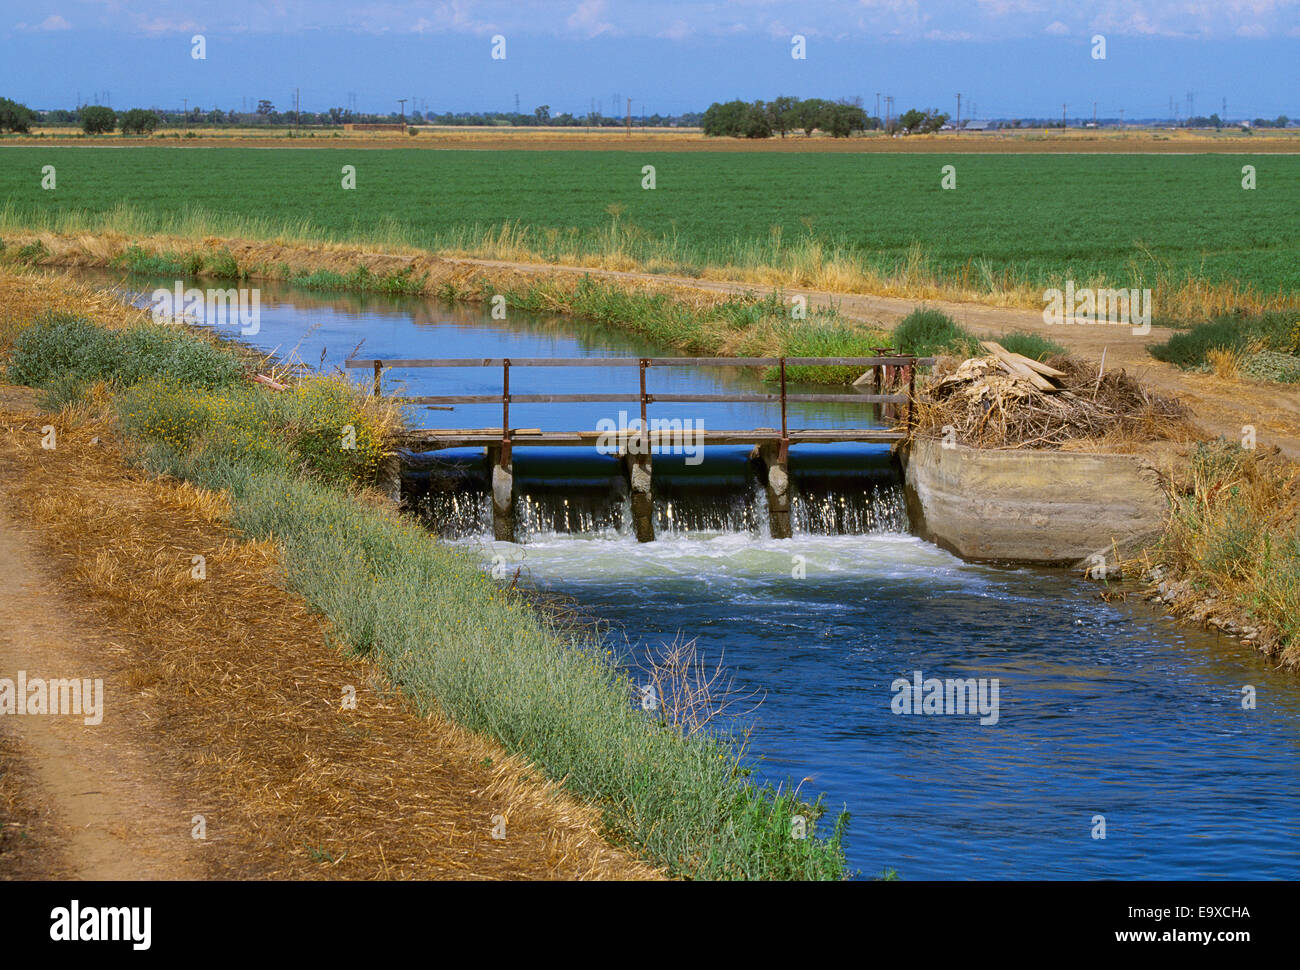 Agricultural Irrigation Canal : Agriculture an irrigation canal runs alongside